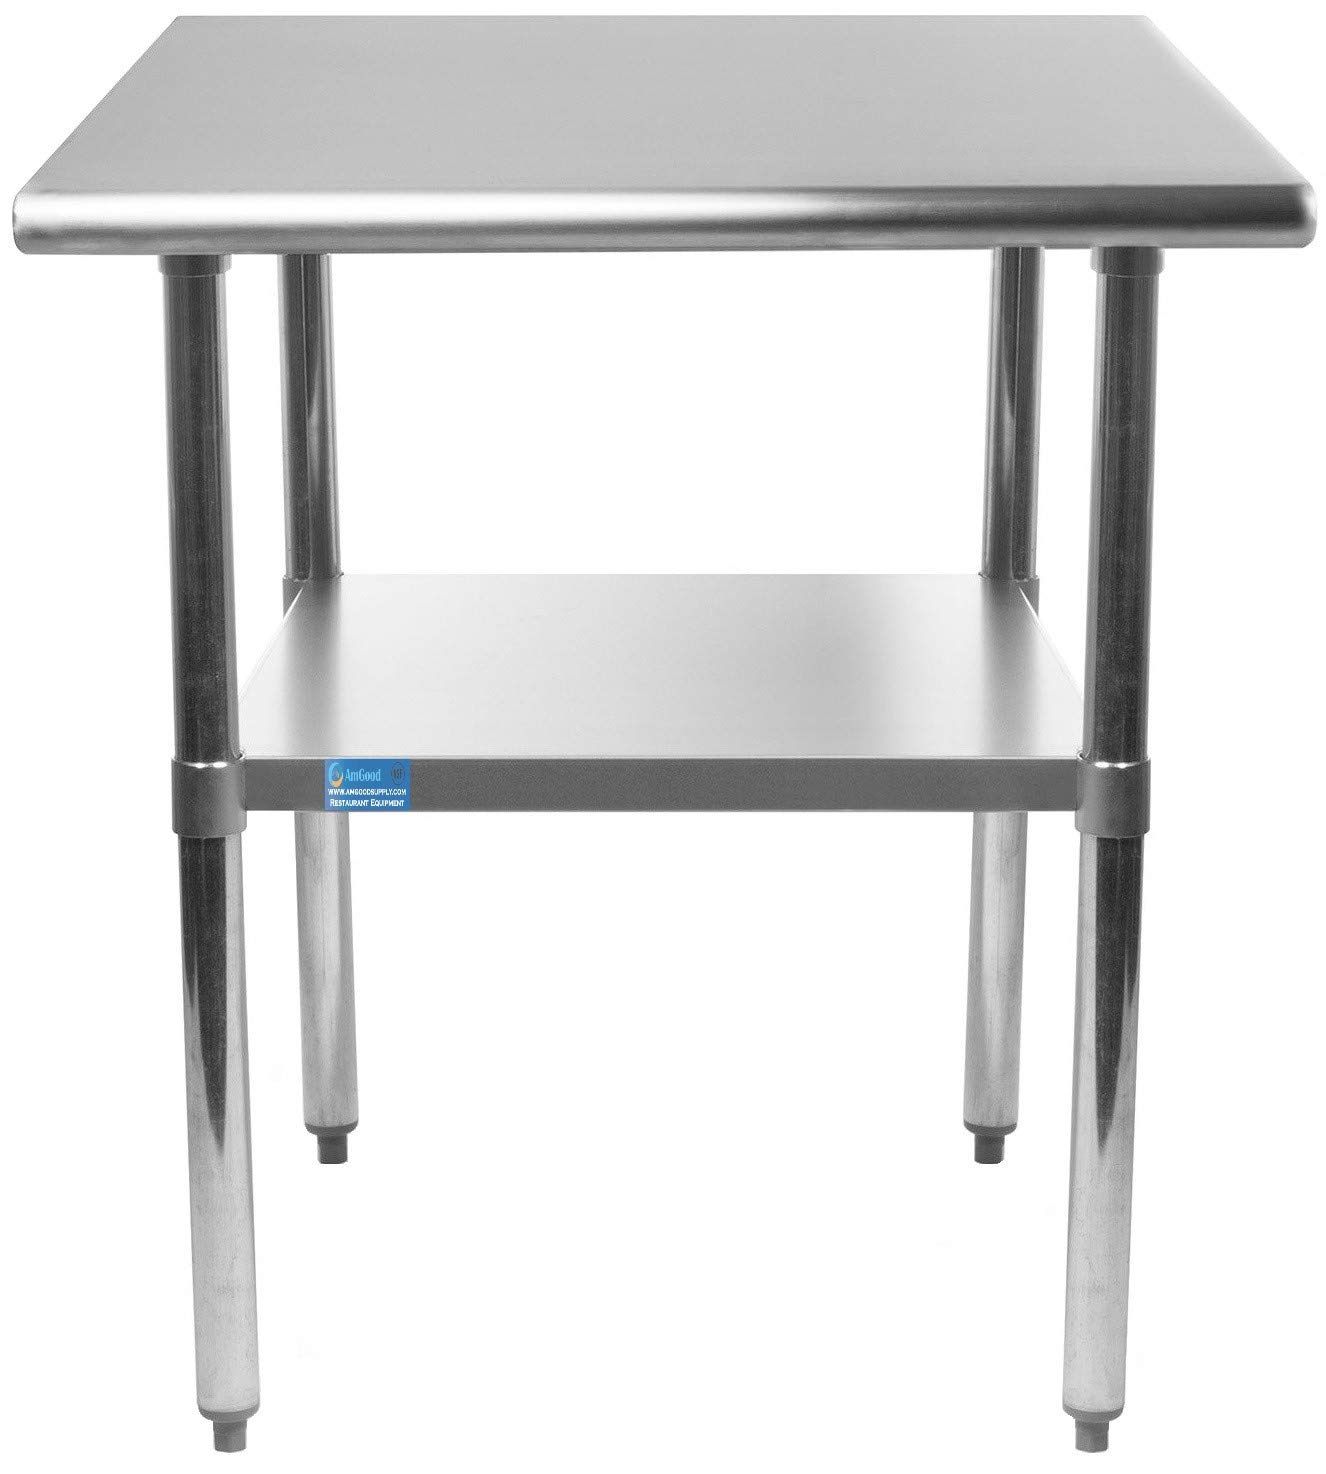 "AmGood Stainless Steel Work Table with Undershelf | Food Prep NSF | Utility Work Station | All Sizes (12"" Length X 24"" Width)"